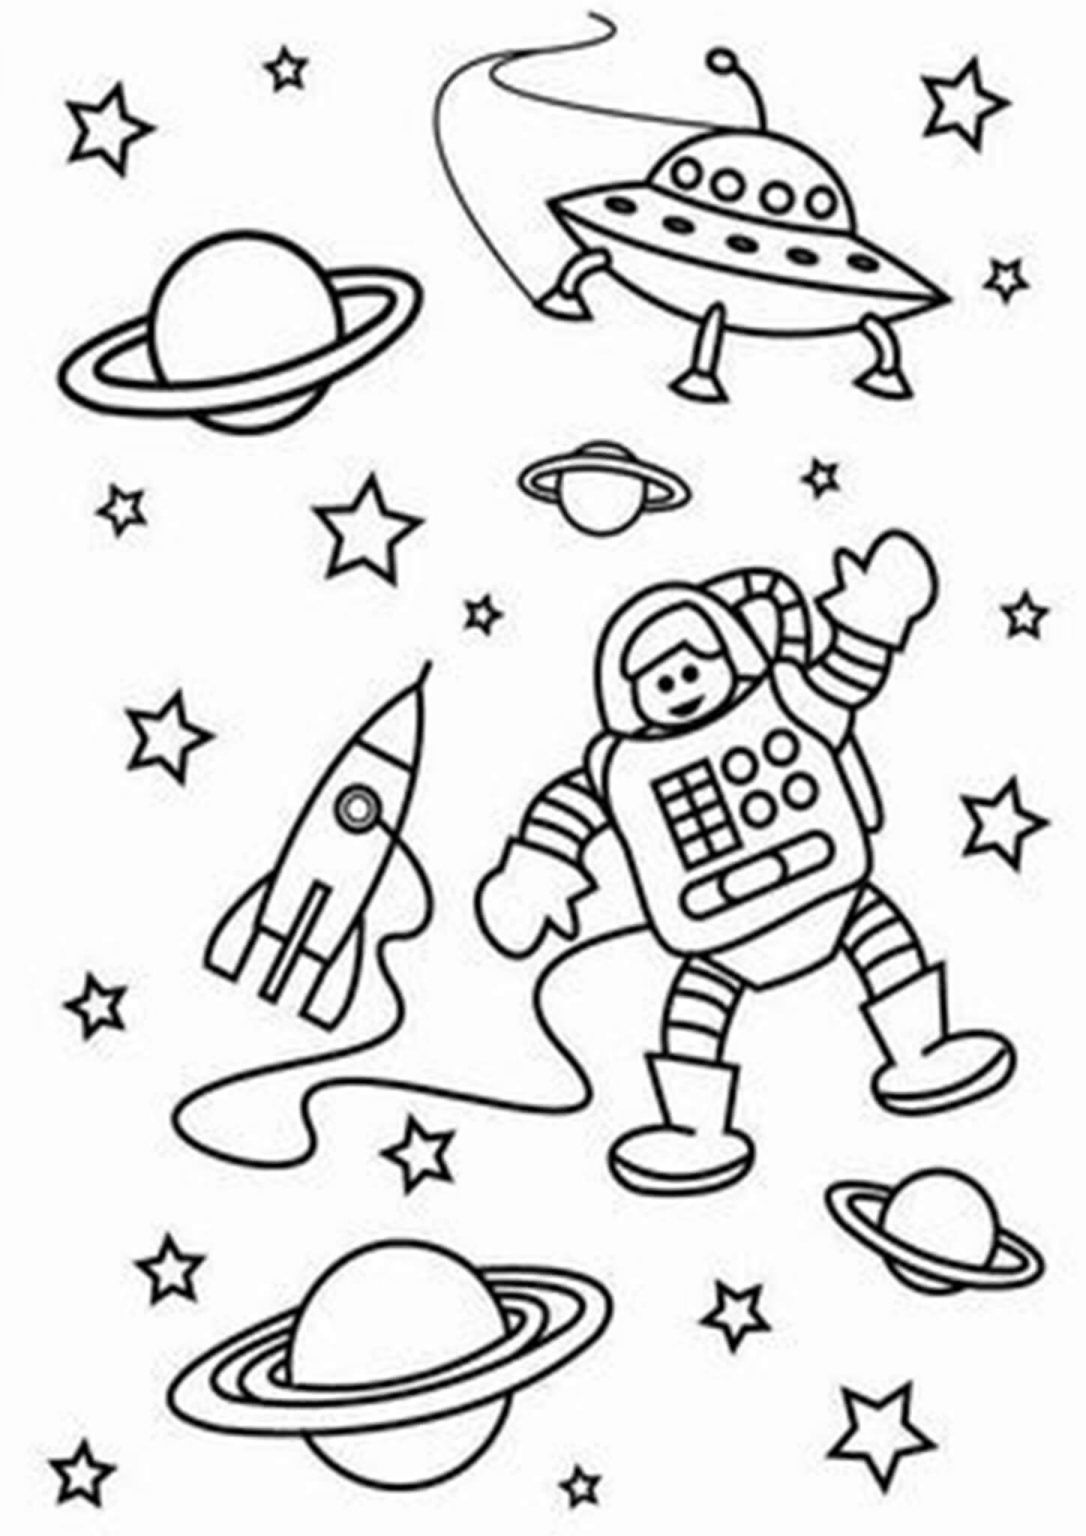 Free Easy To Print Space Coloring Pages In 2021 Space Coloring Pages Coloring Pages Coloring Pages For Kids [ 1536 x 1086 Pixel ]